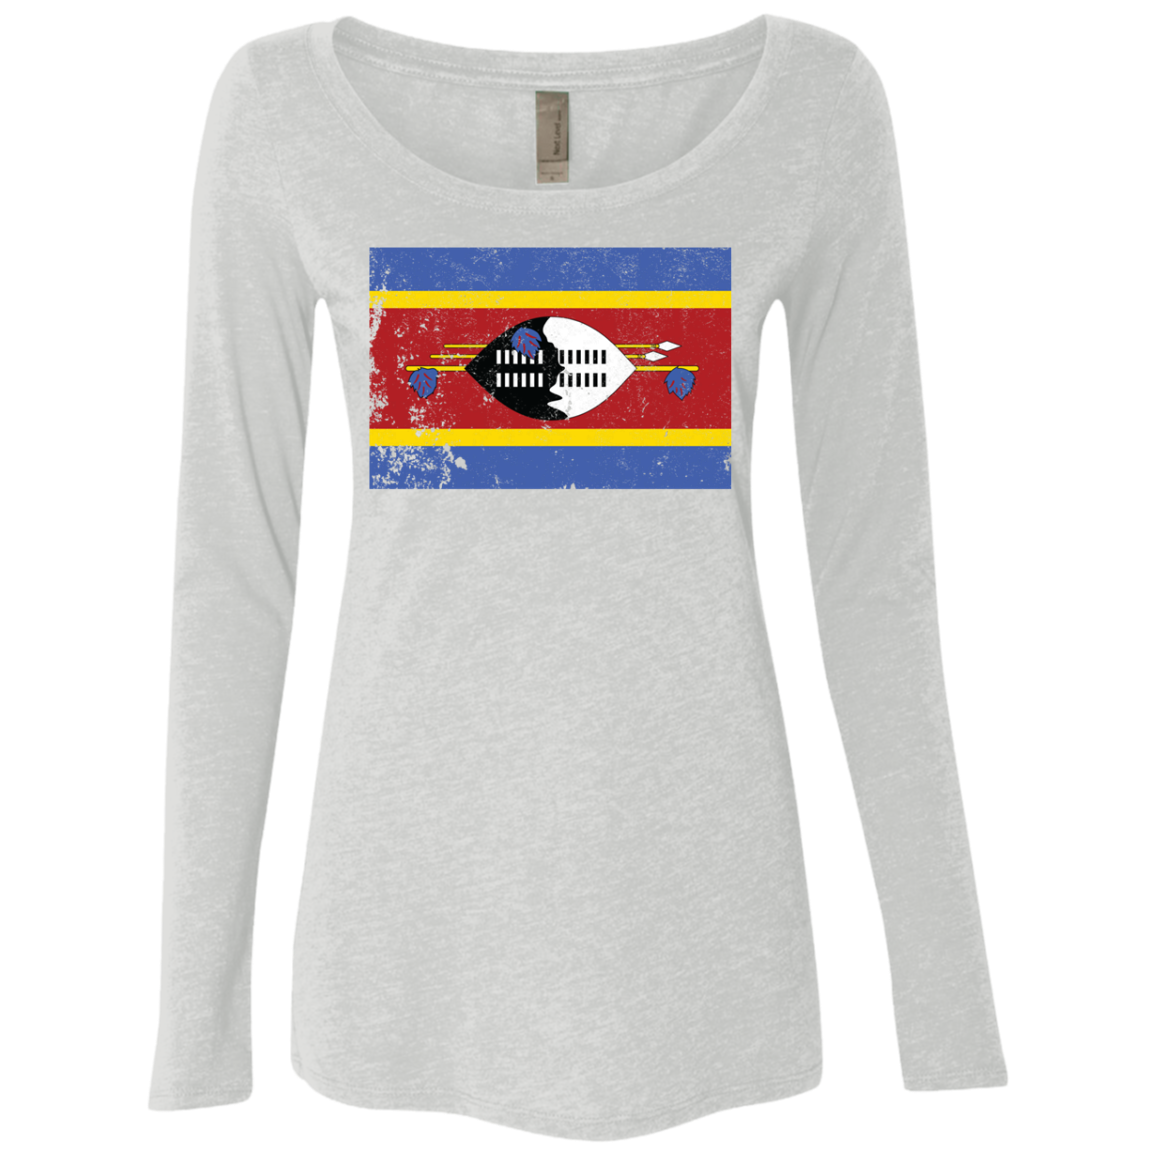 south africa–swaziland border Women's Long Sleeve Tee